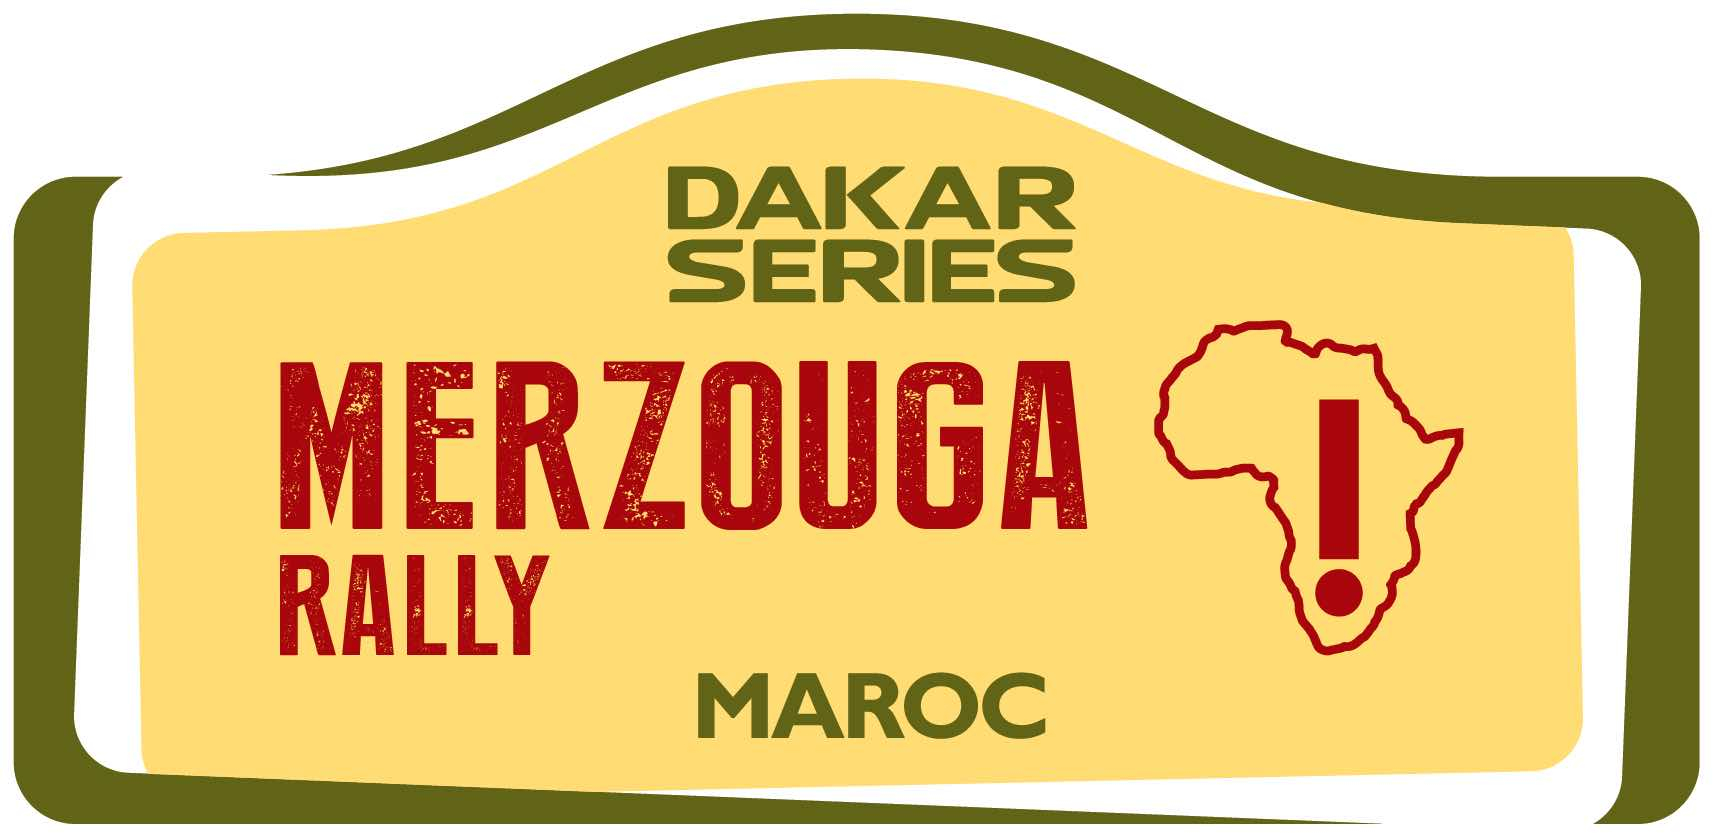 Colingua translates the Merzouga Rally